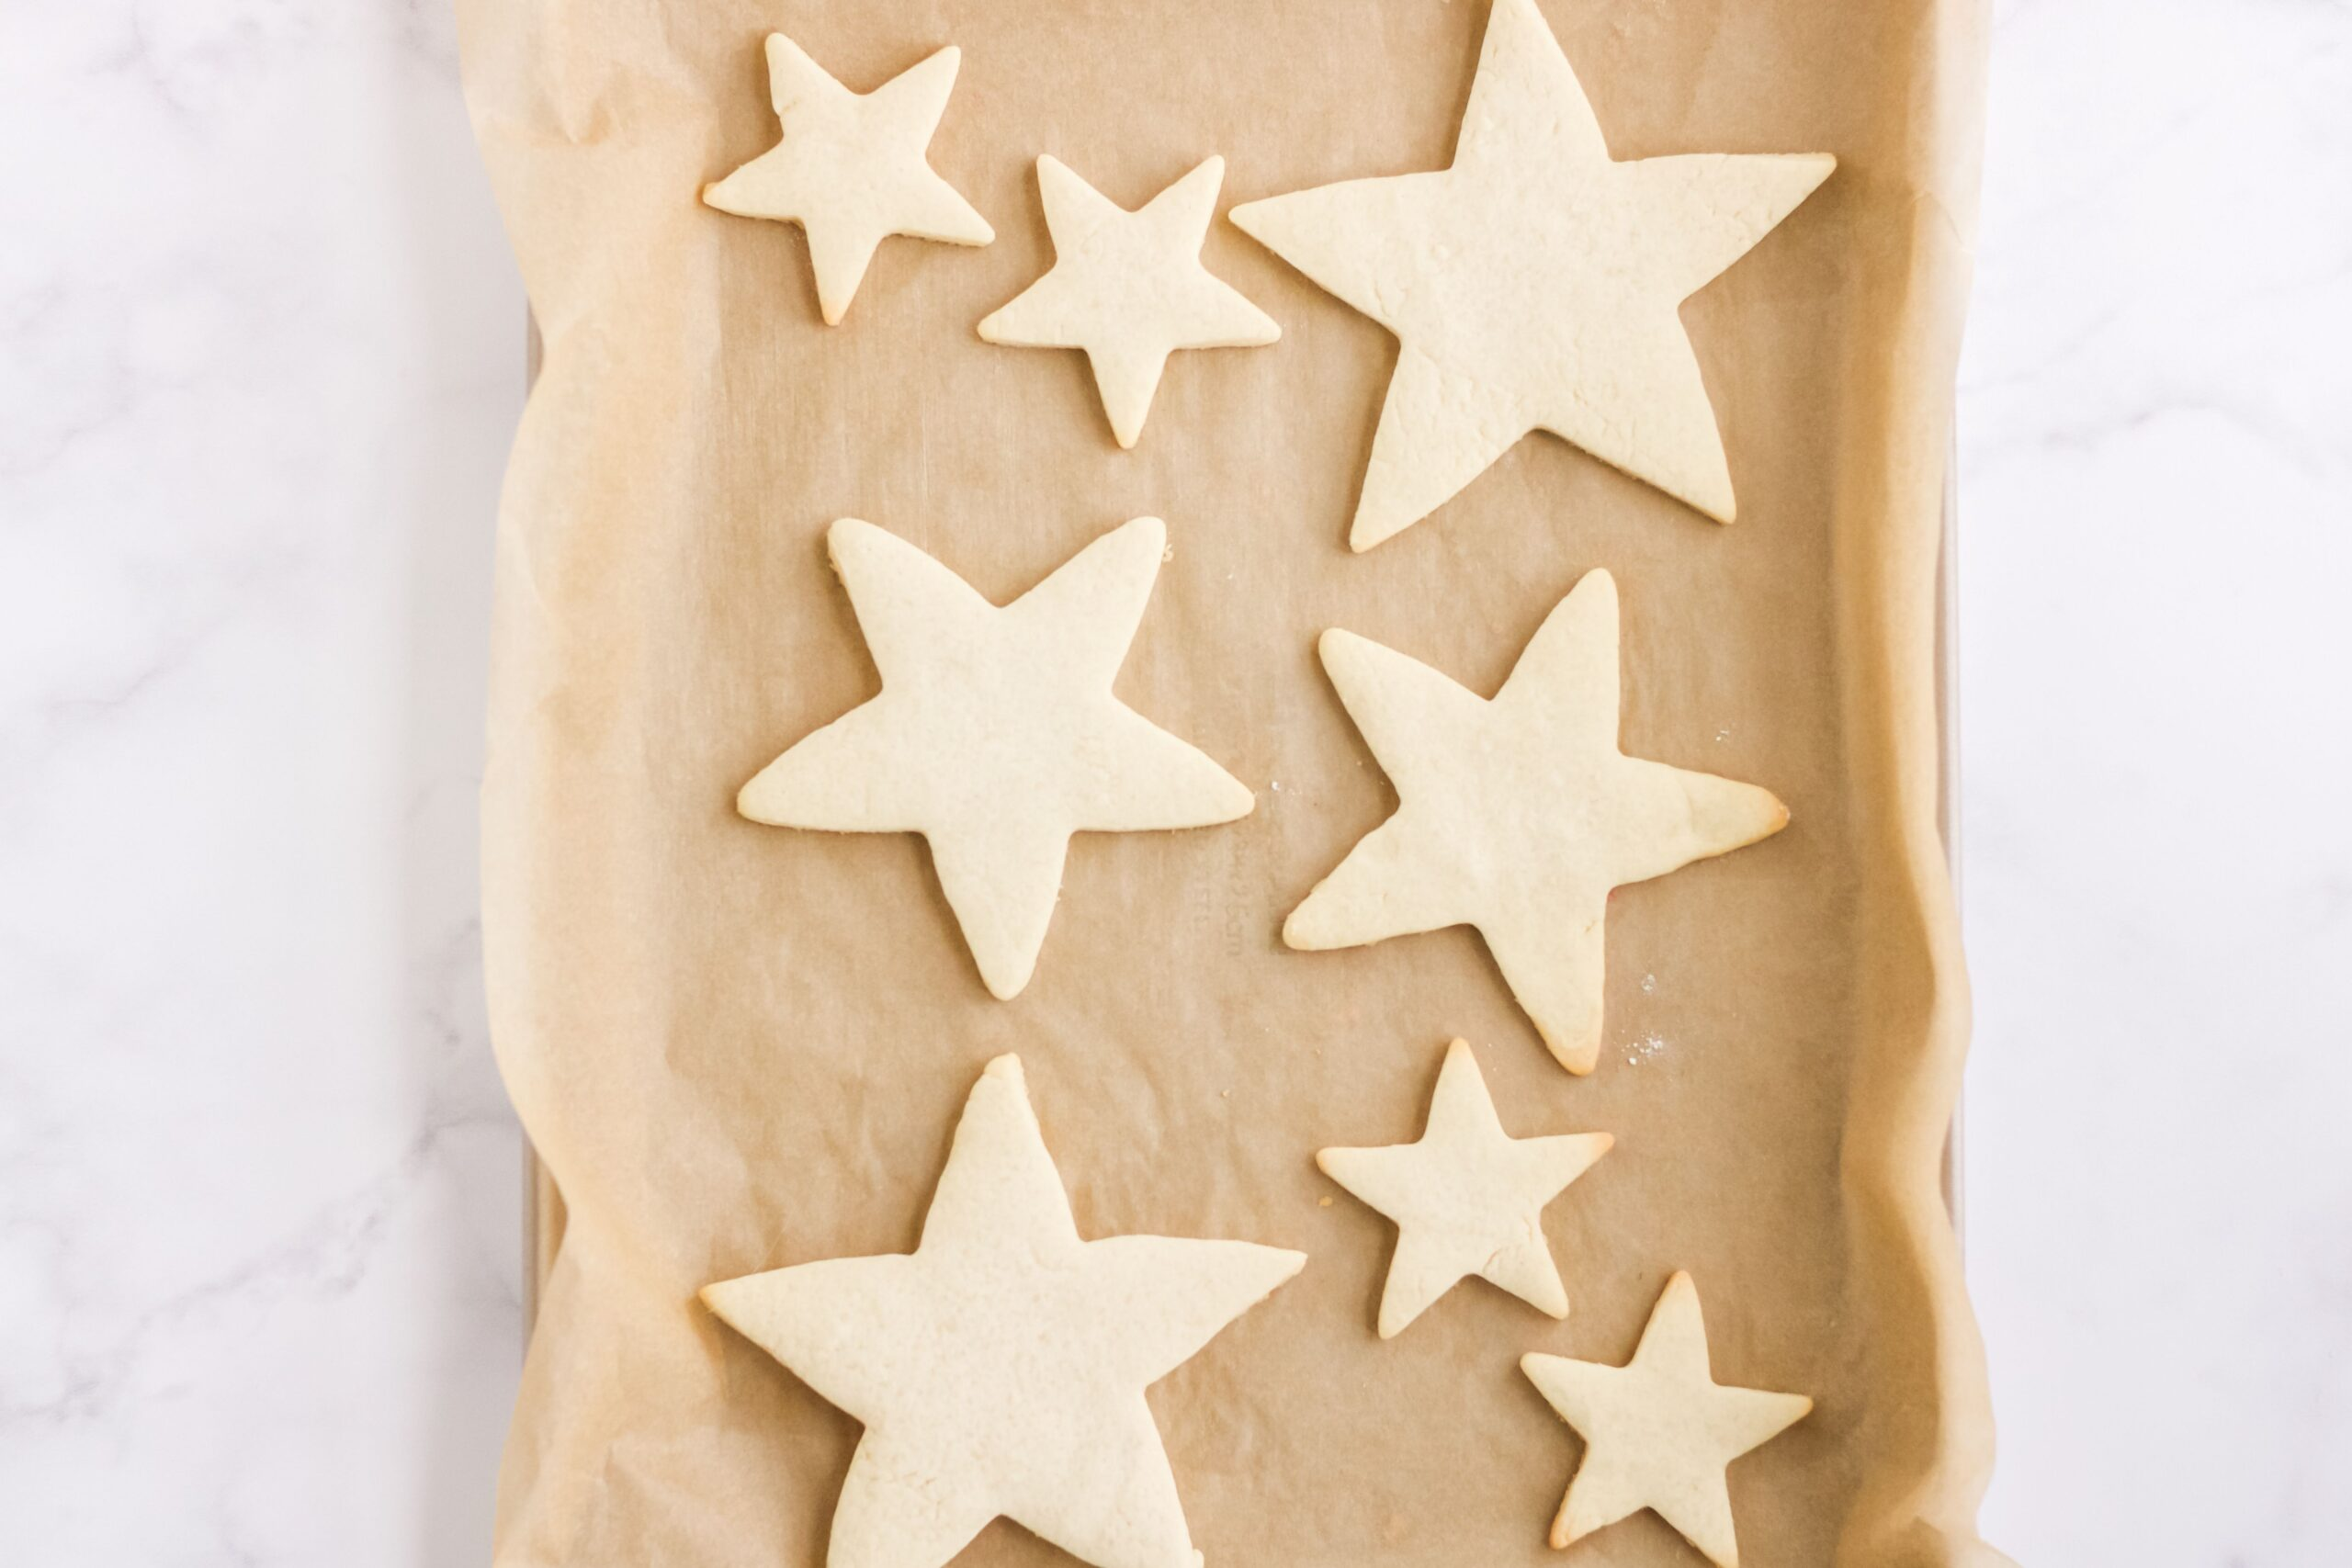 Baked cut out sugar cookies in a star shape on a parchment lined baking sheet.